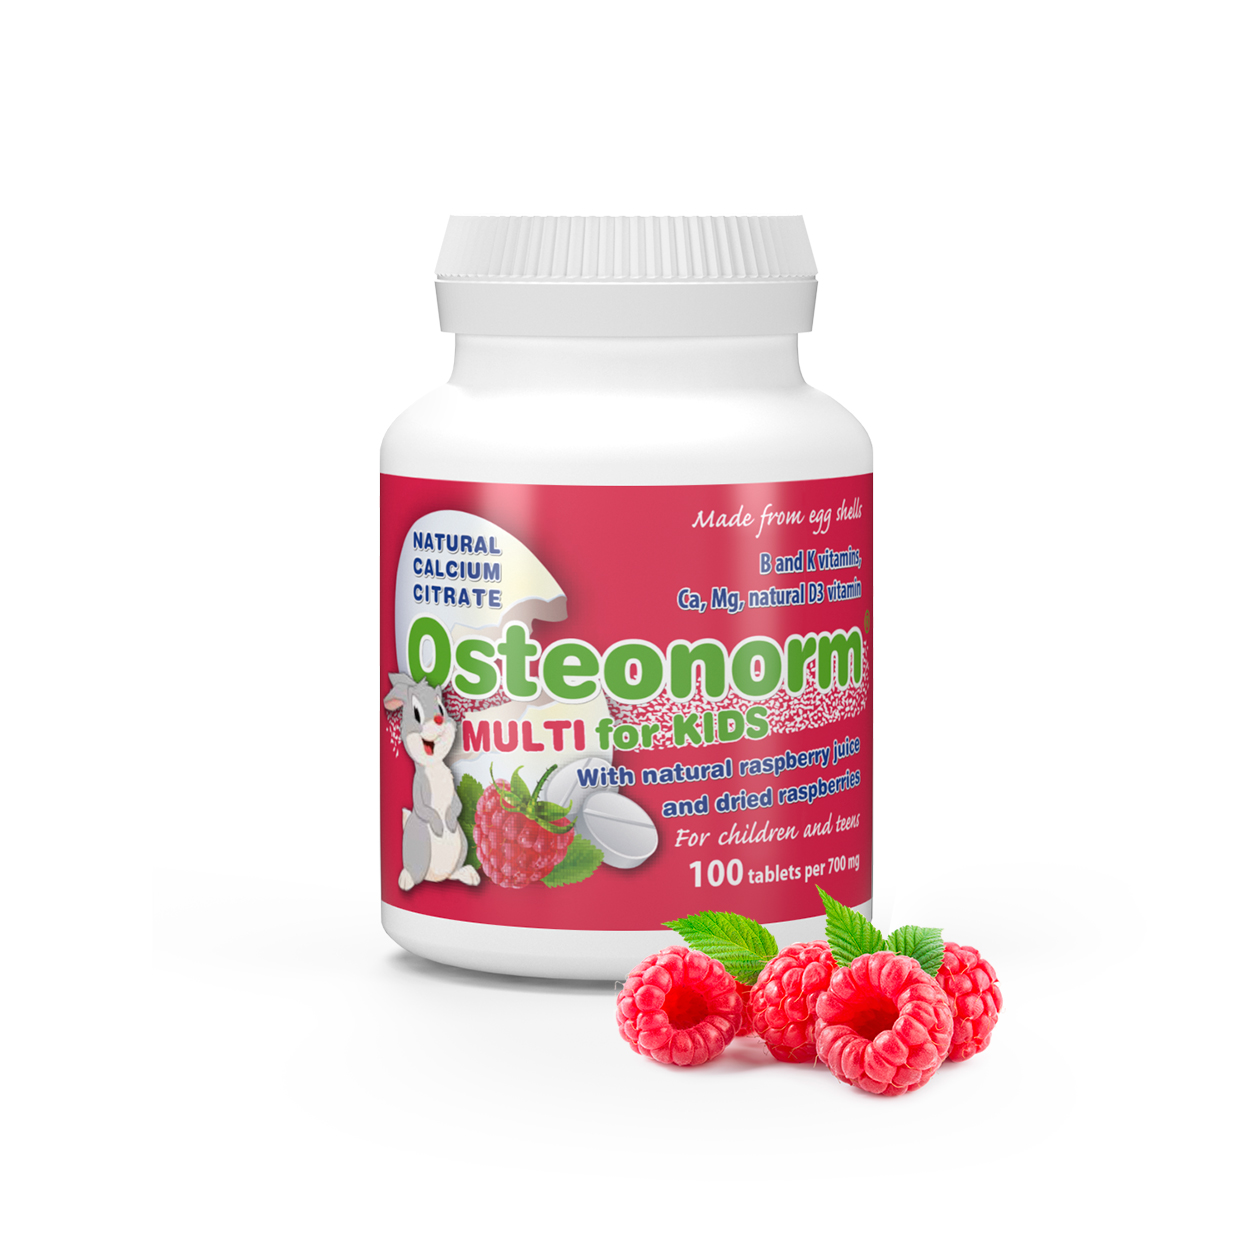 Osteonorm_Raspberries_02 Osteonorm MULTI for KIDS 100 tablets per 700mg